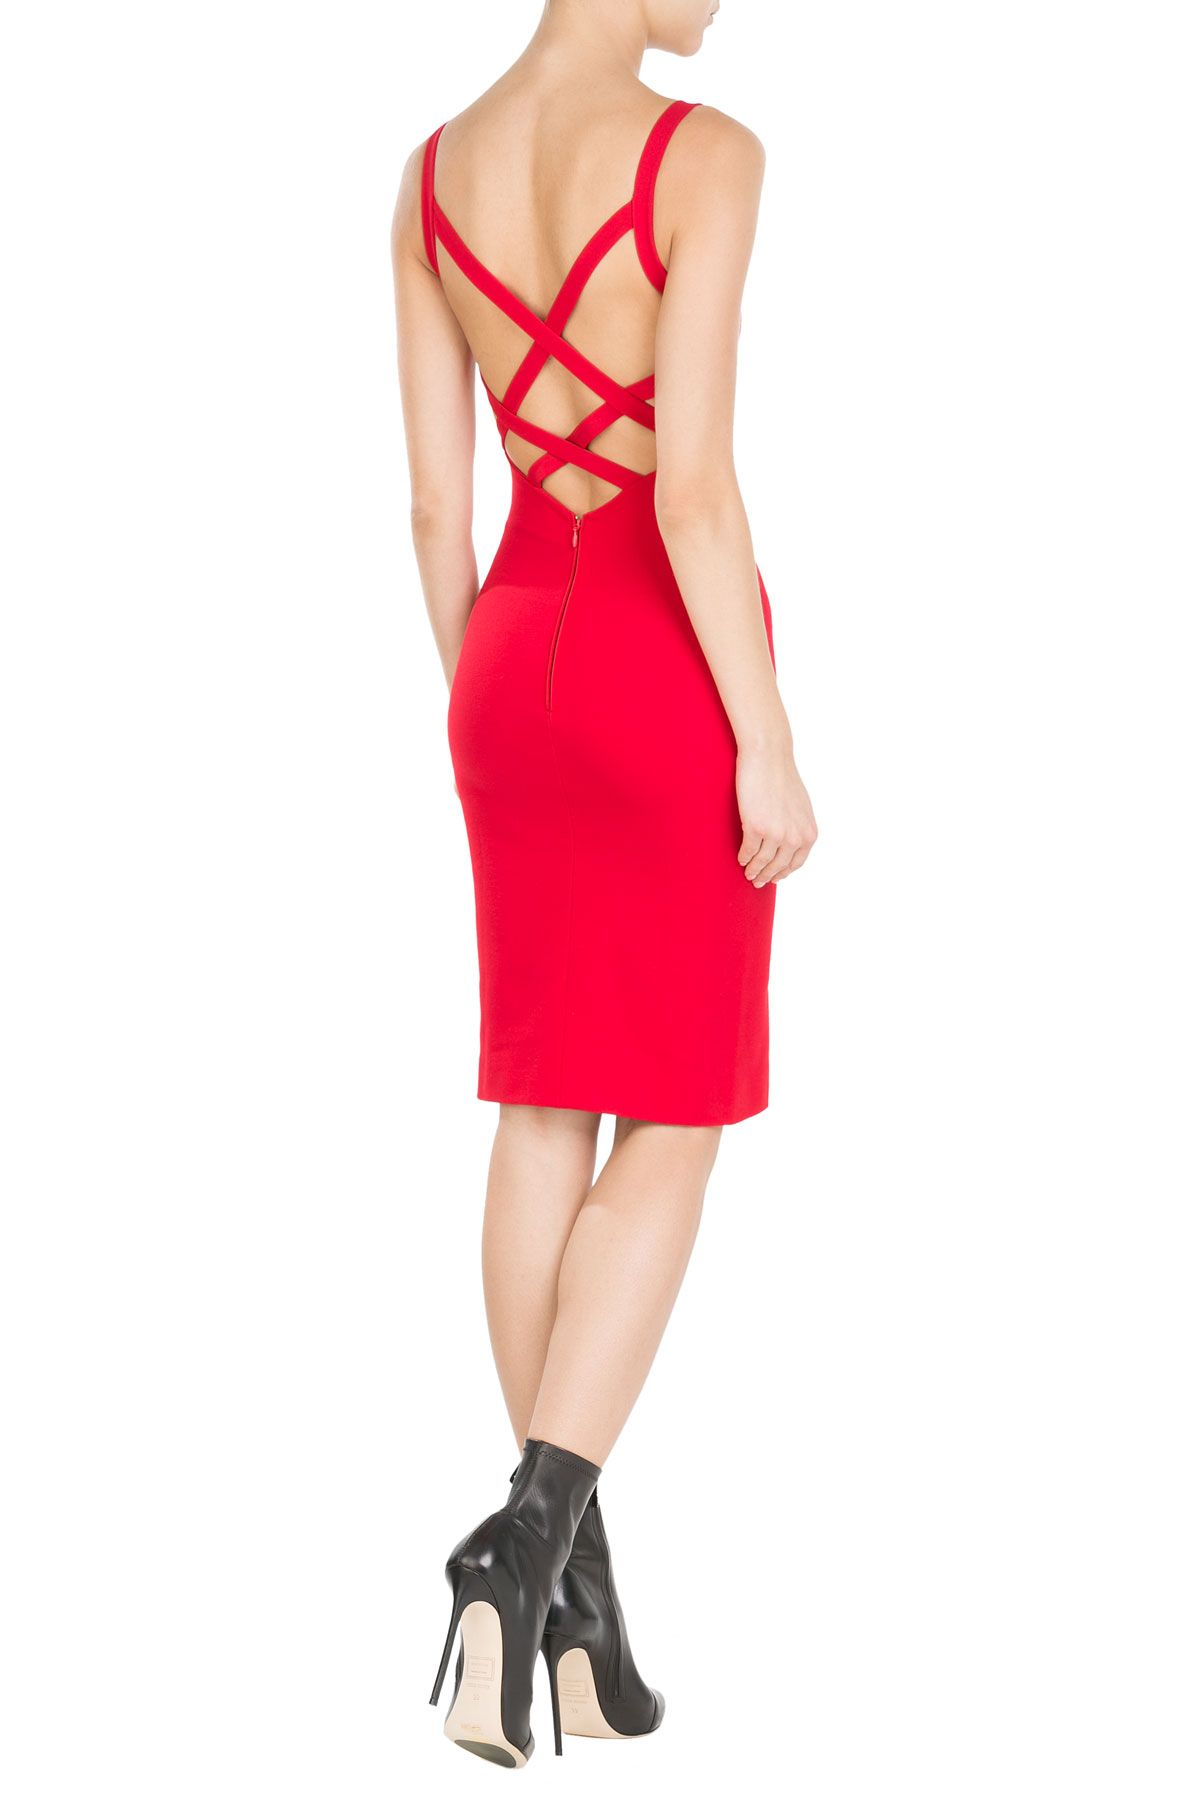 Bring the '90s back in this crimson shift dress with sultry criss-cross straps.